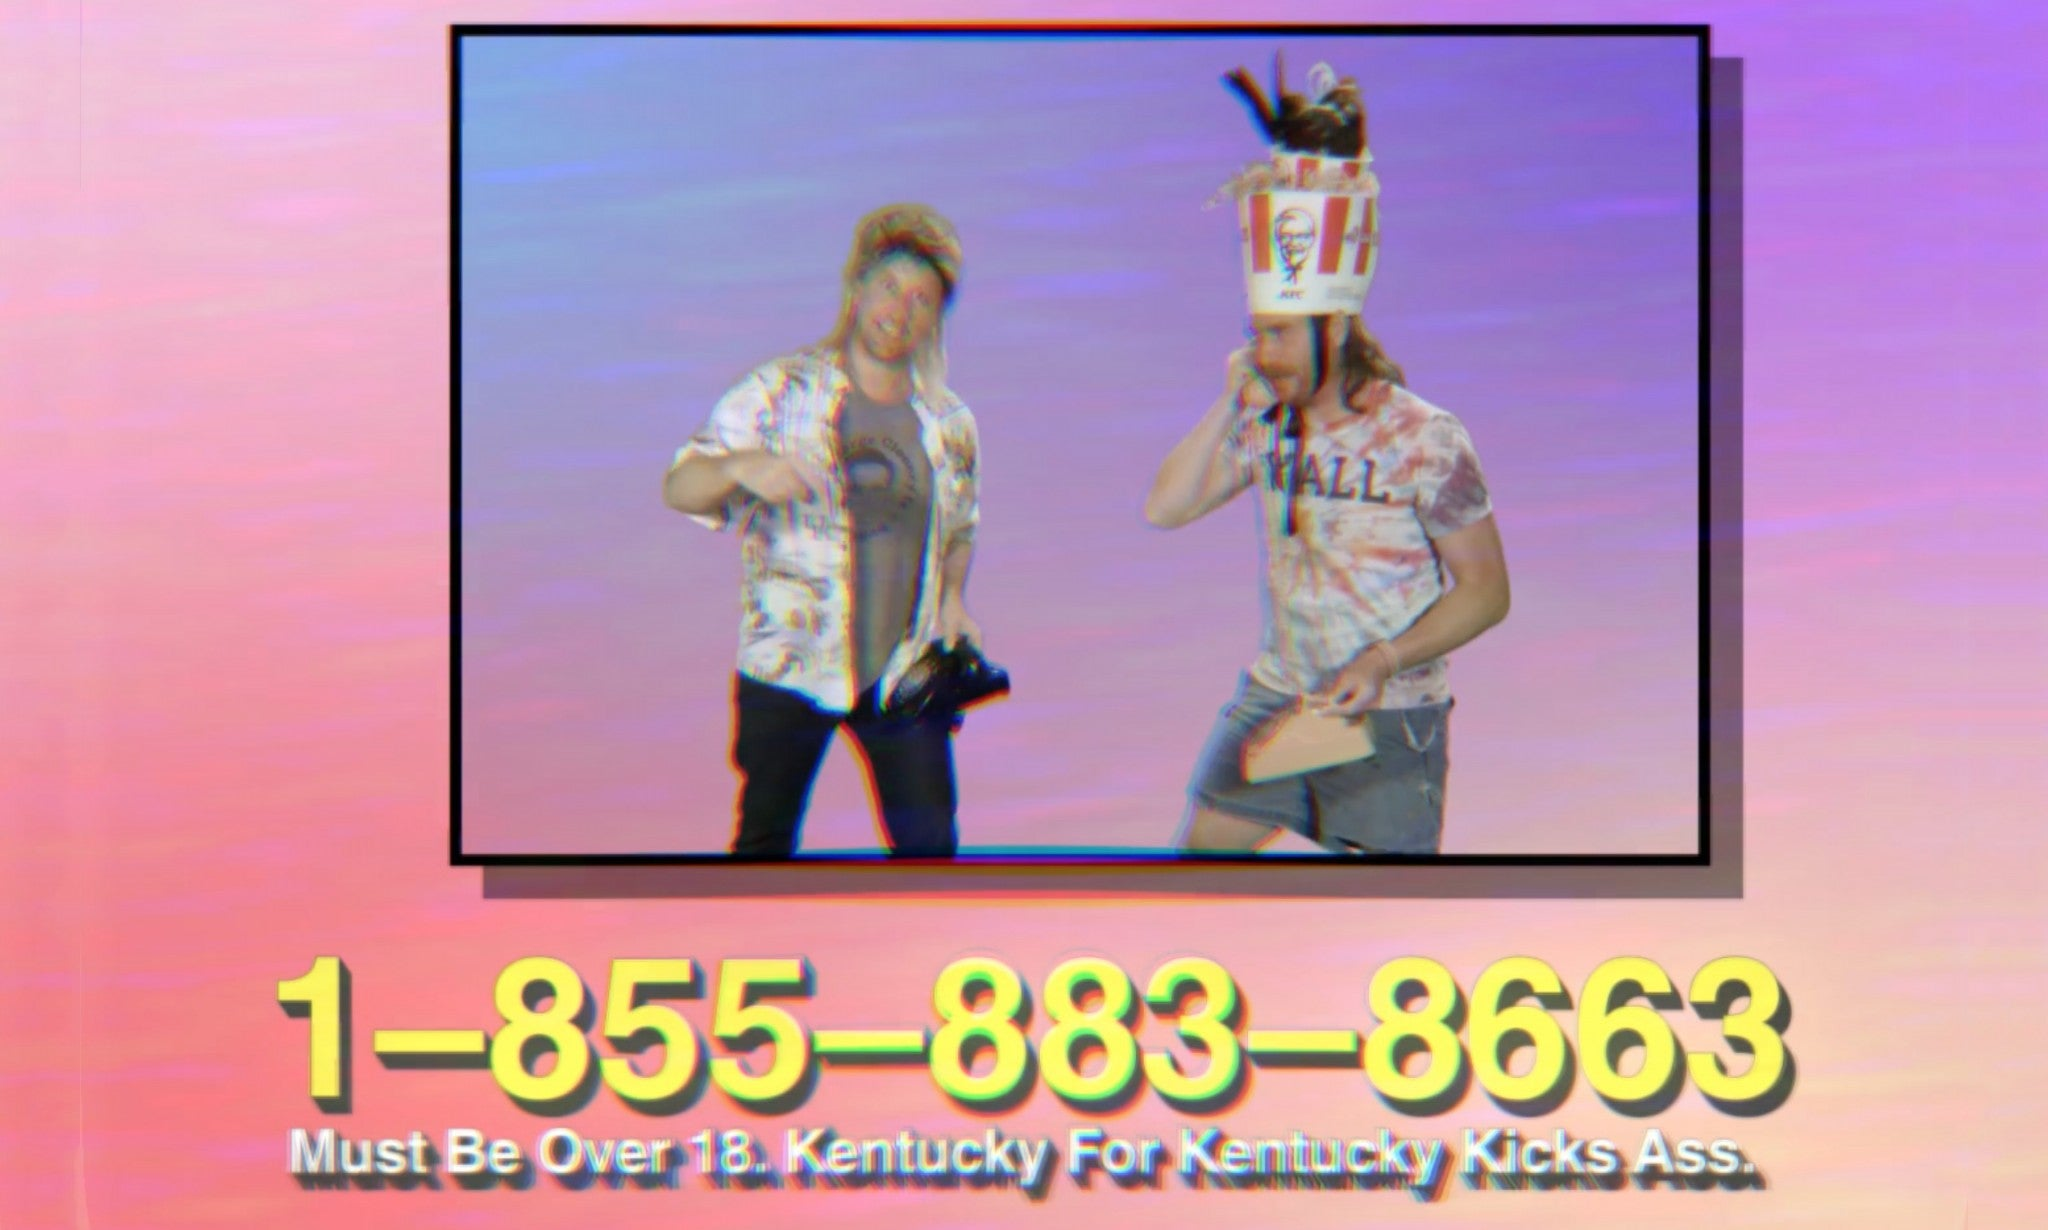 Kentucky For Kicks Ass Ky Store Location It Is The Tradition That A Kentuckian Never Runs He Does My Old Hotline